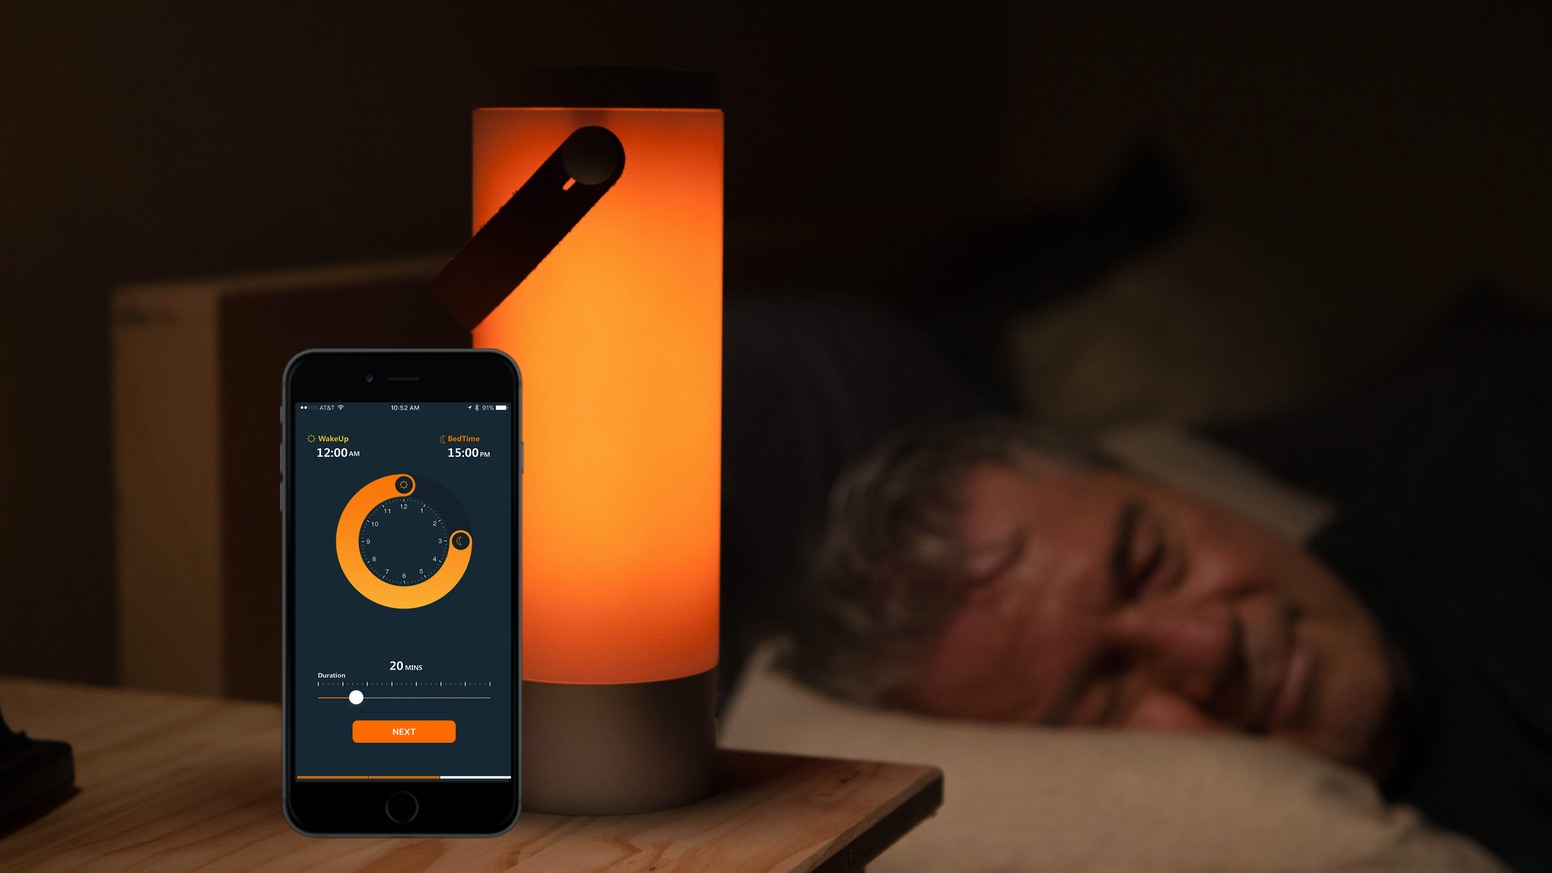 A 16 million color customizable smart light that transforms how you sleep and wake up. Built-in speaker, app control, works with Alexa.